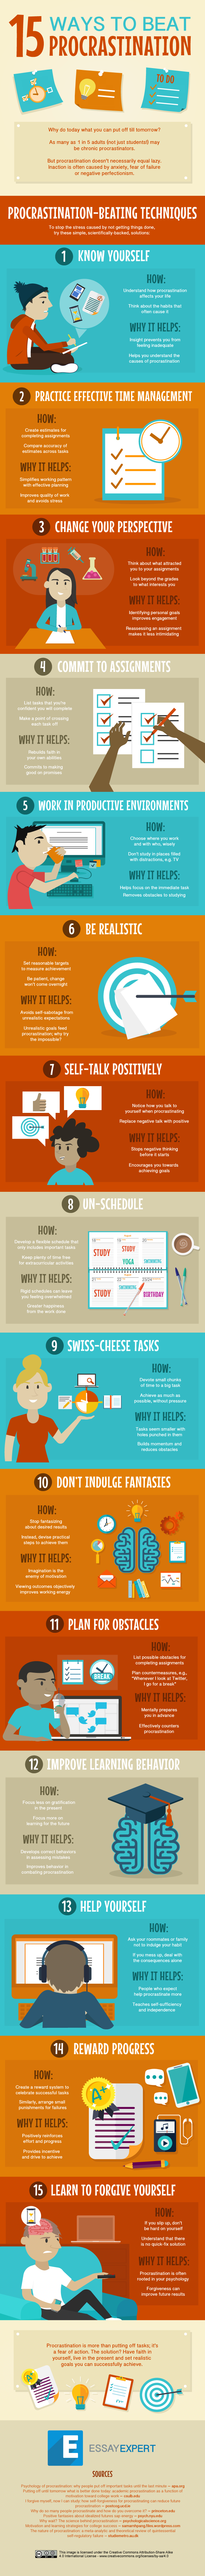 ways to beat procrastination infographic essay expert 15 ways to beat procrastination